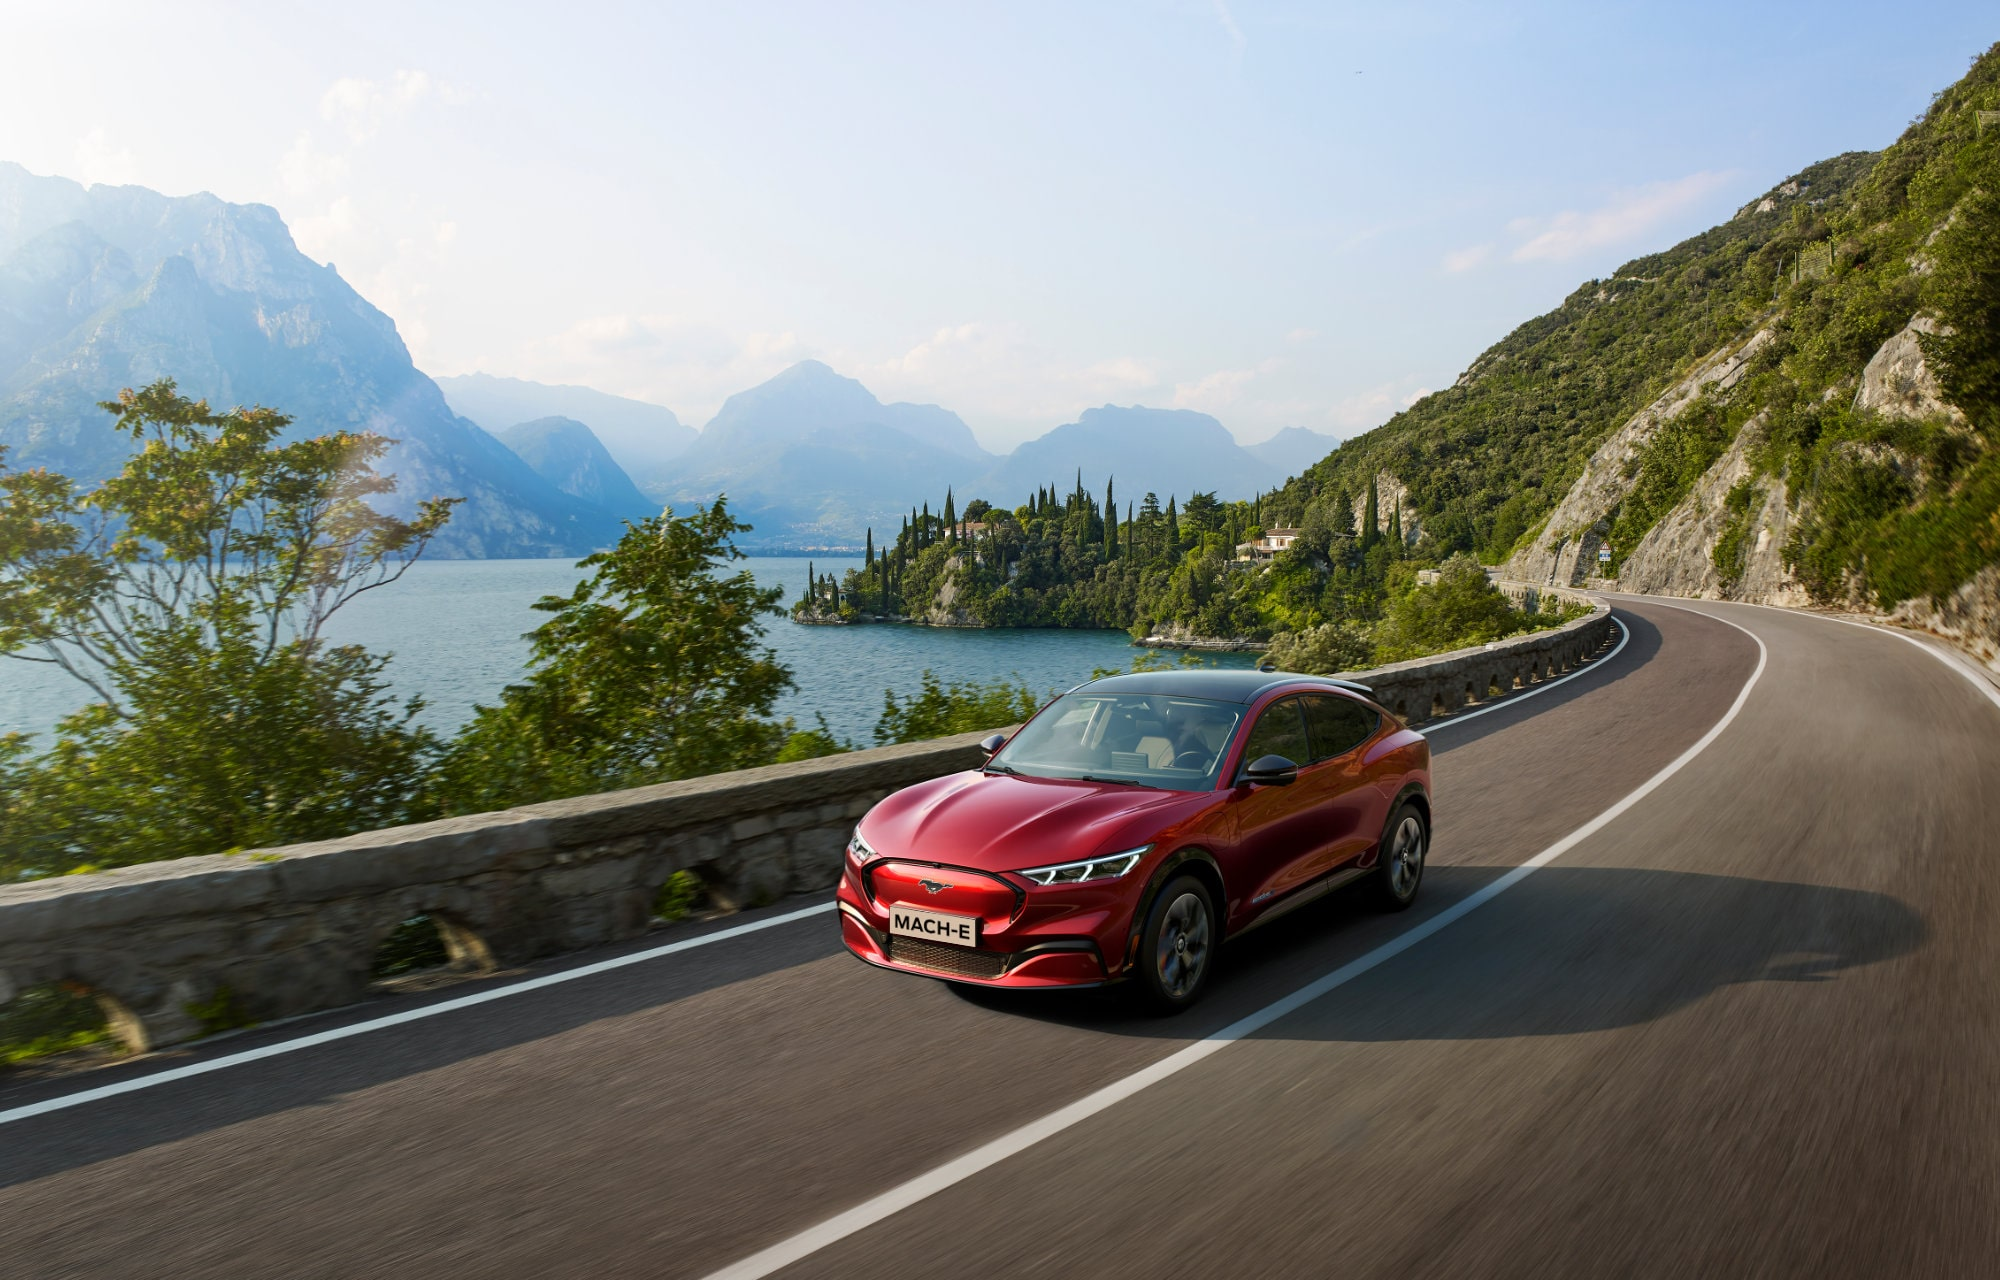 commande ford mustang mach-e Luxembourg